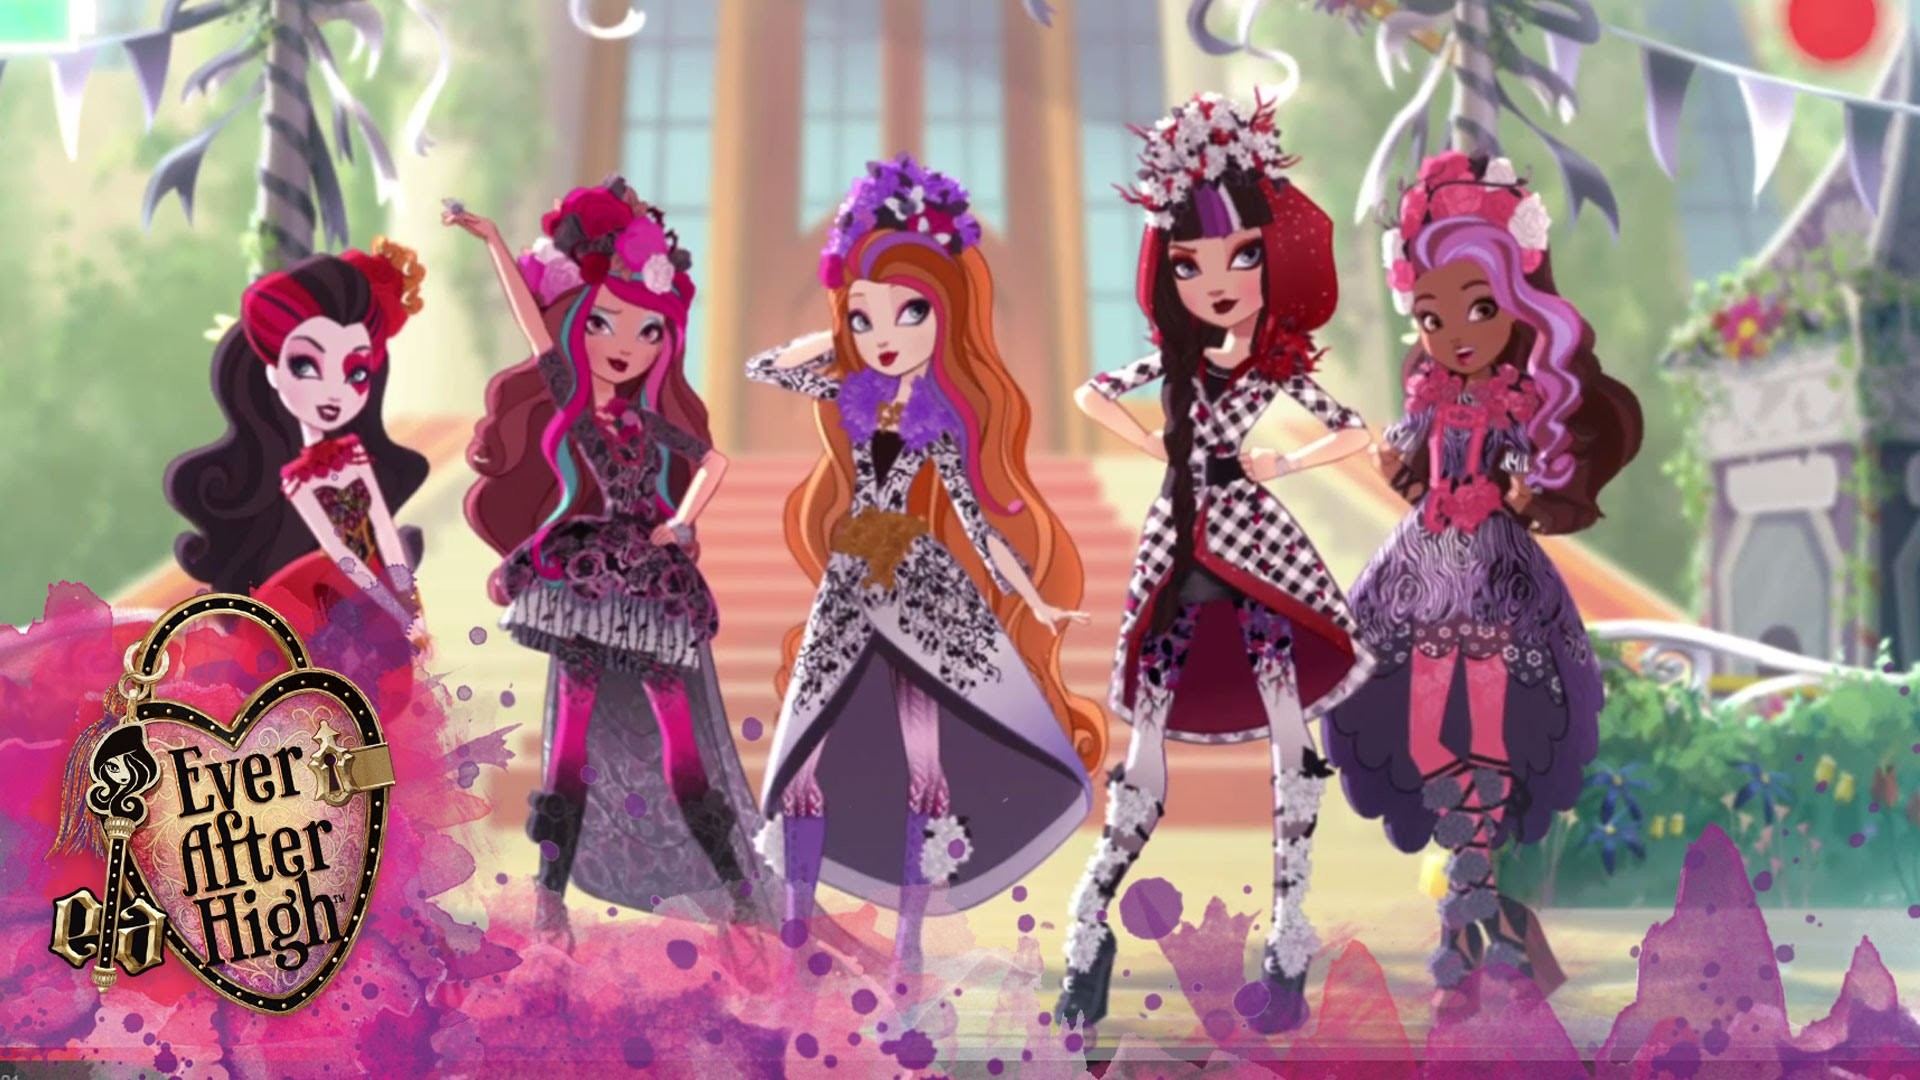 Spring Unsprung: Spellbinding Spring Fashions | Ever After High™ – YouTube